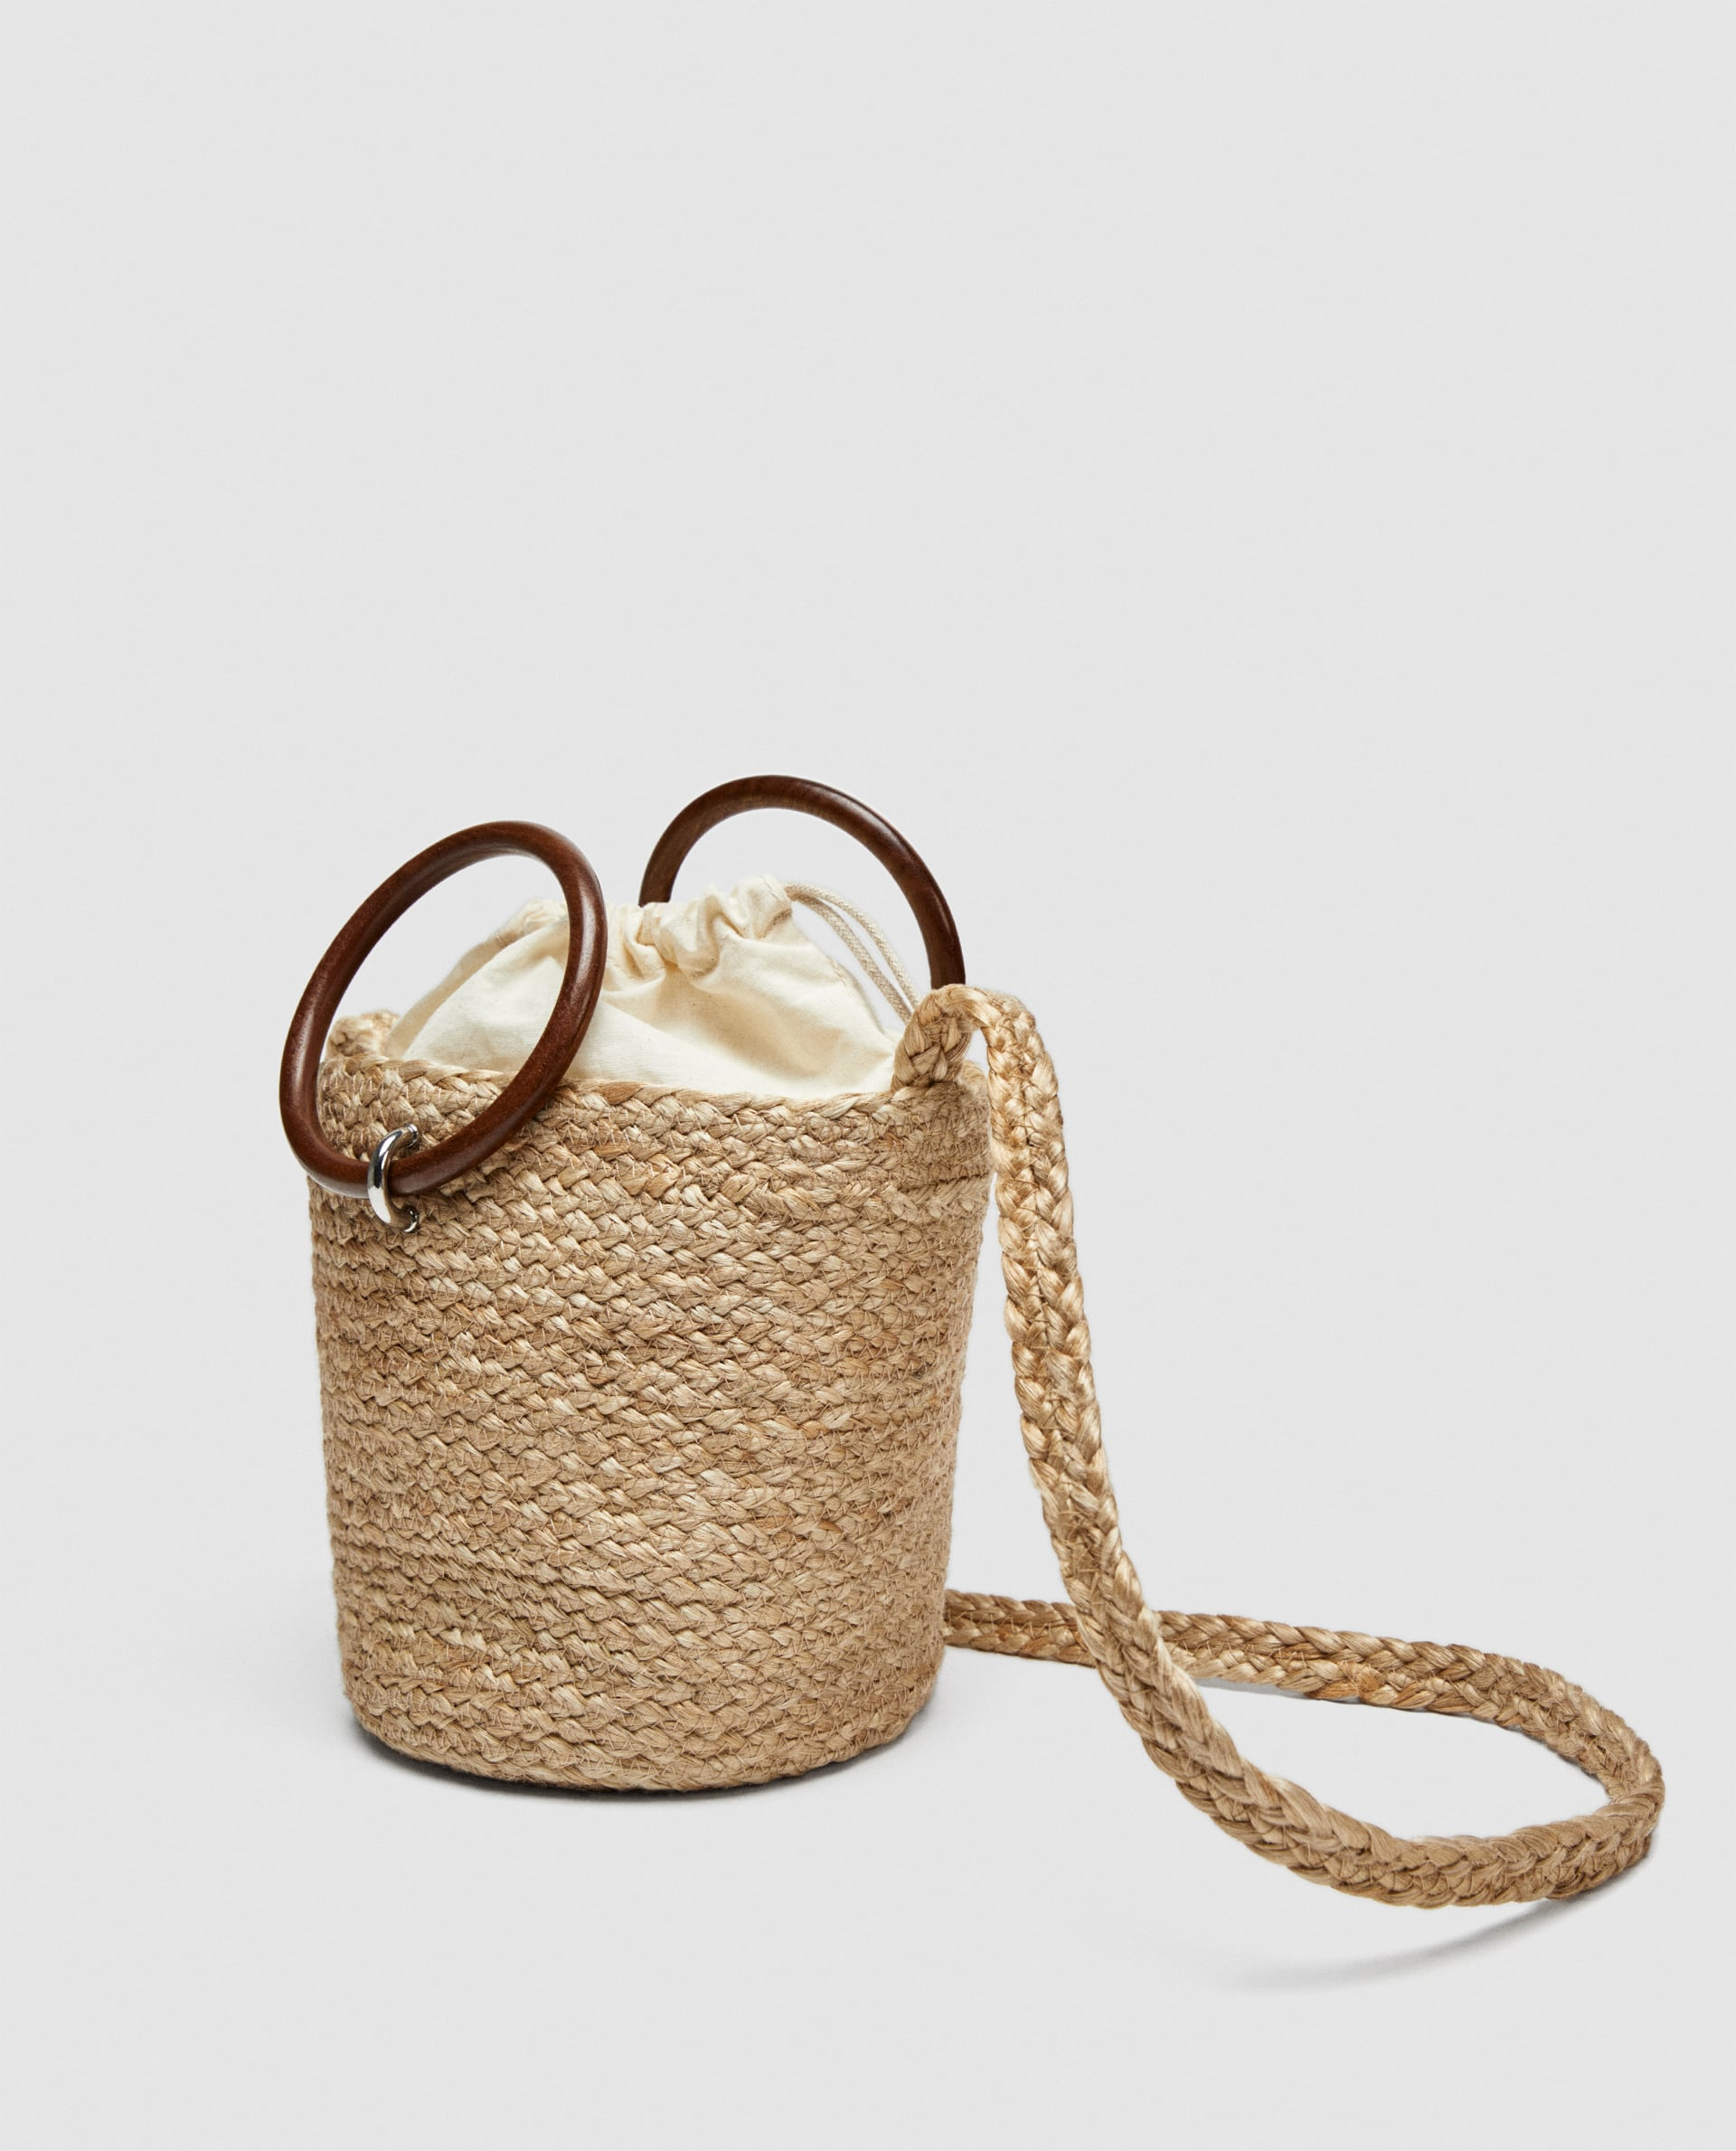 TOTE WITH WOODEN HANDLES